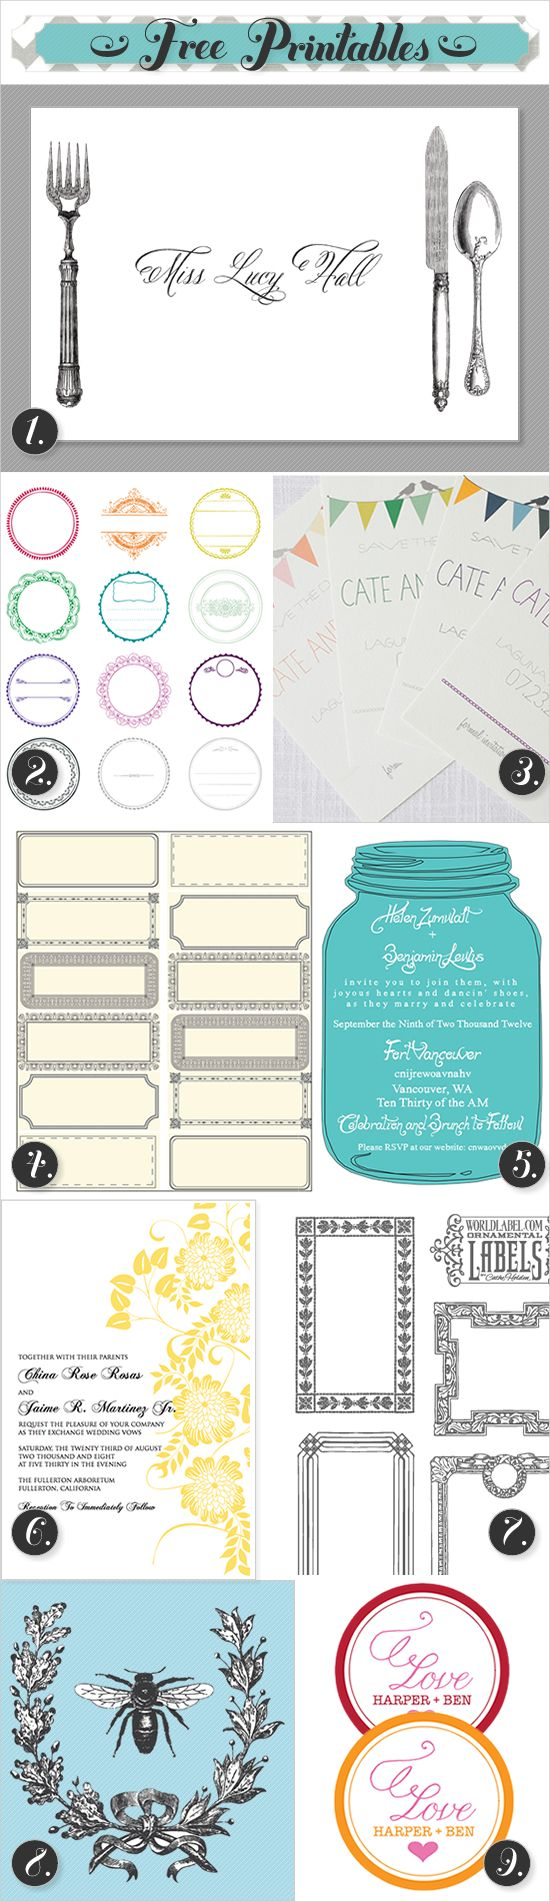 so many FREE Printable INVITATIONS,  Labels,  etc around the web!